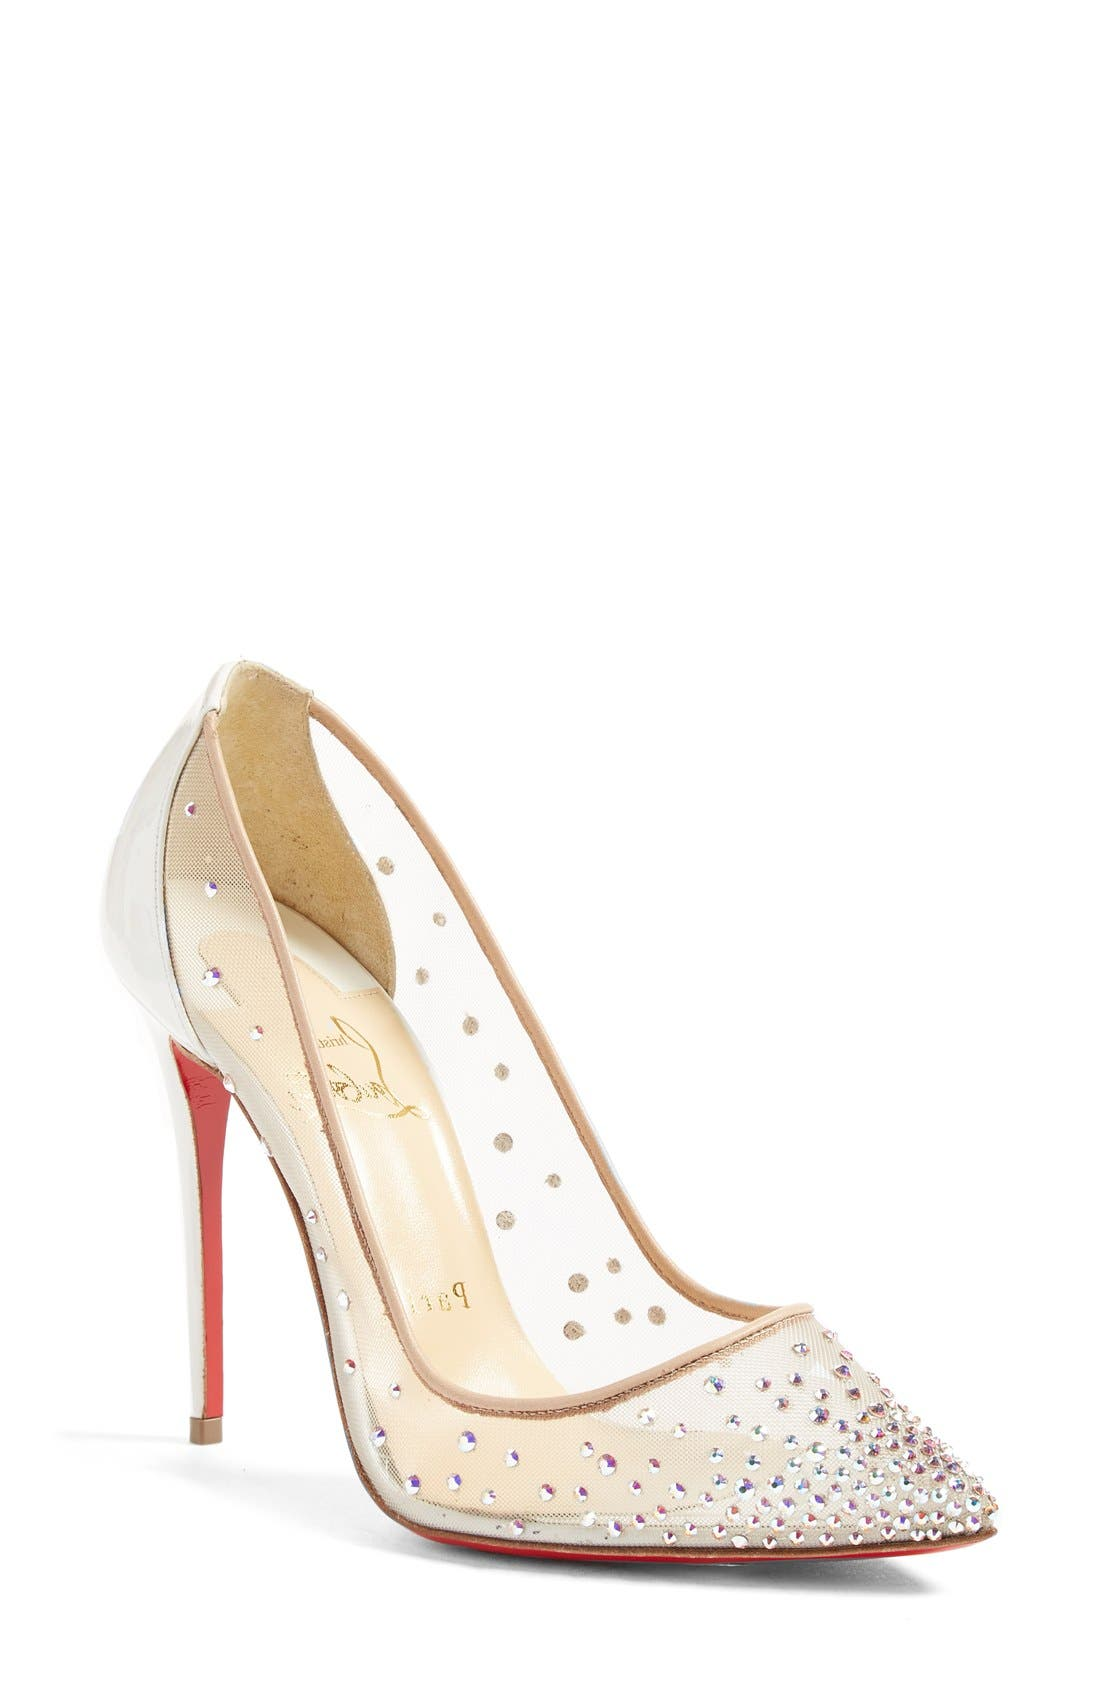 32a55f62cabe Christian Louboutin Follies Strass Pointy Toe Pump